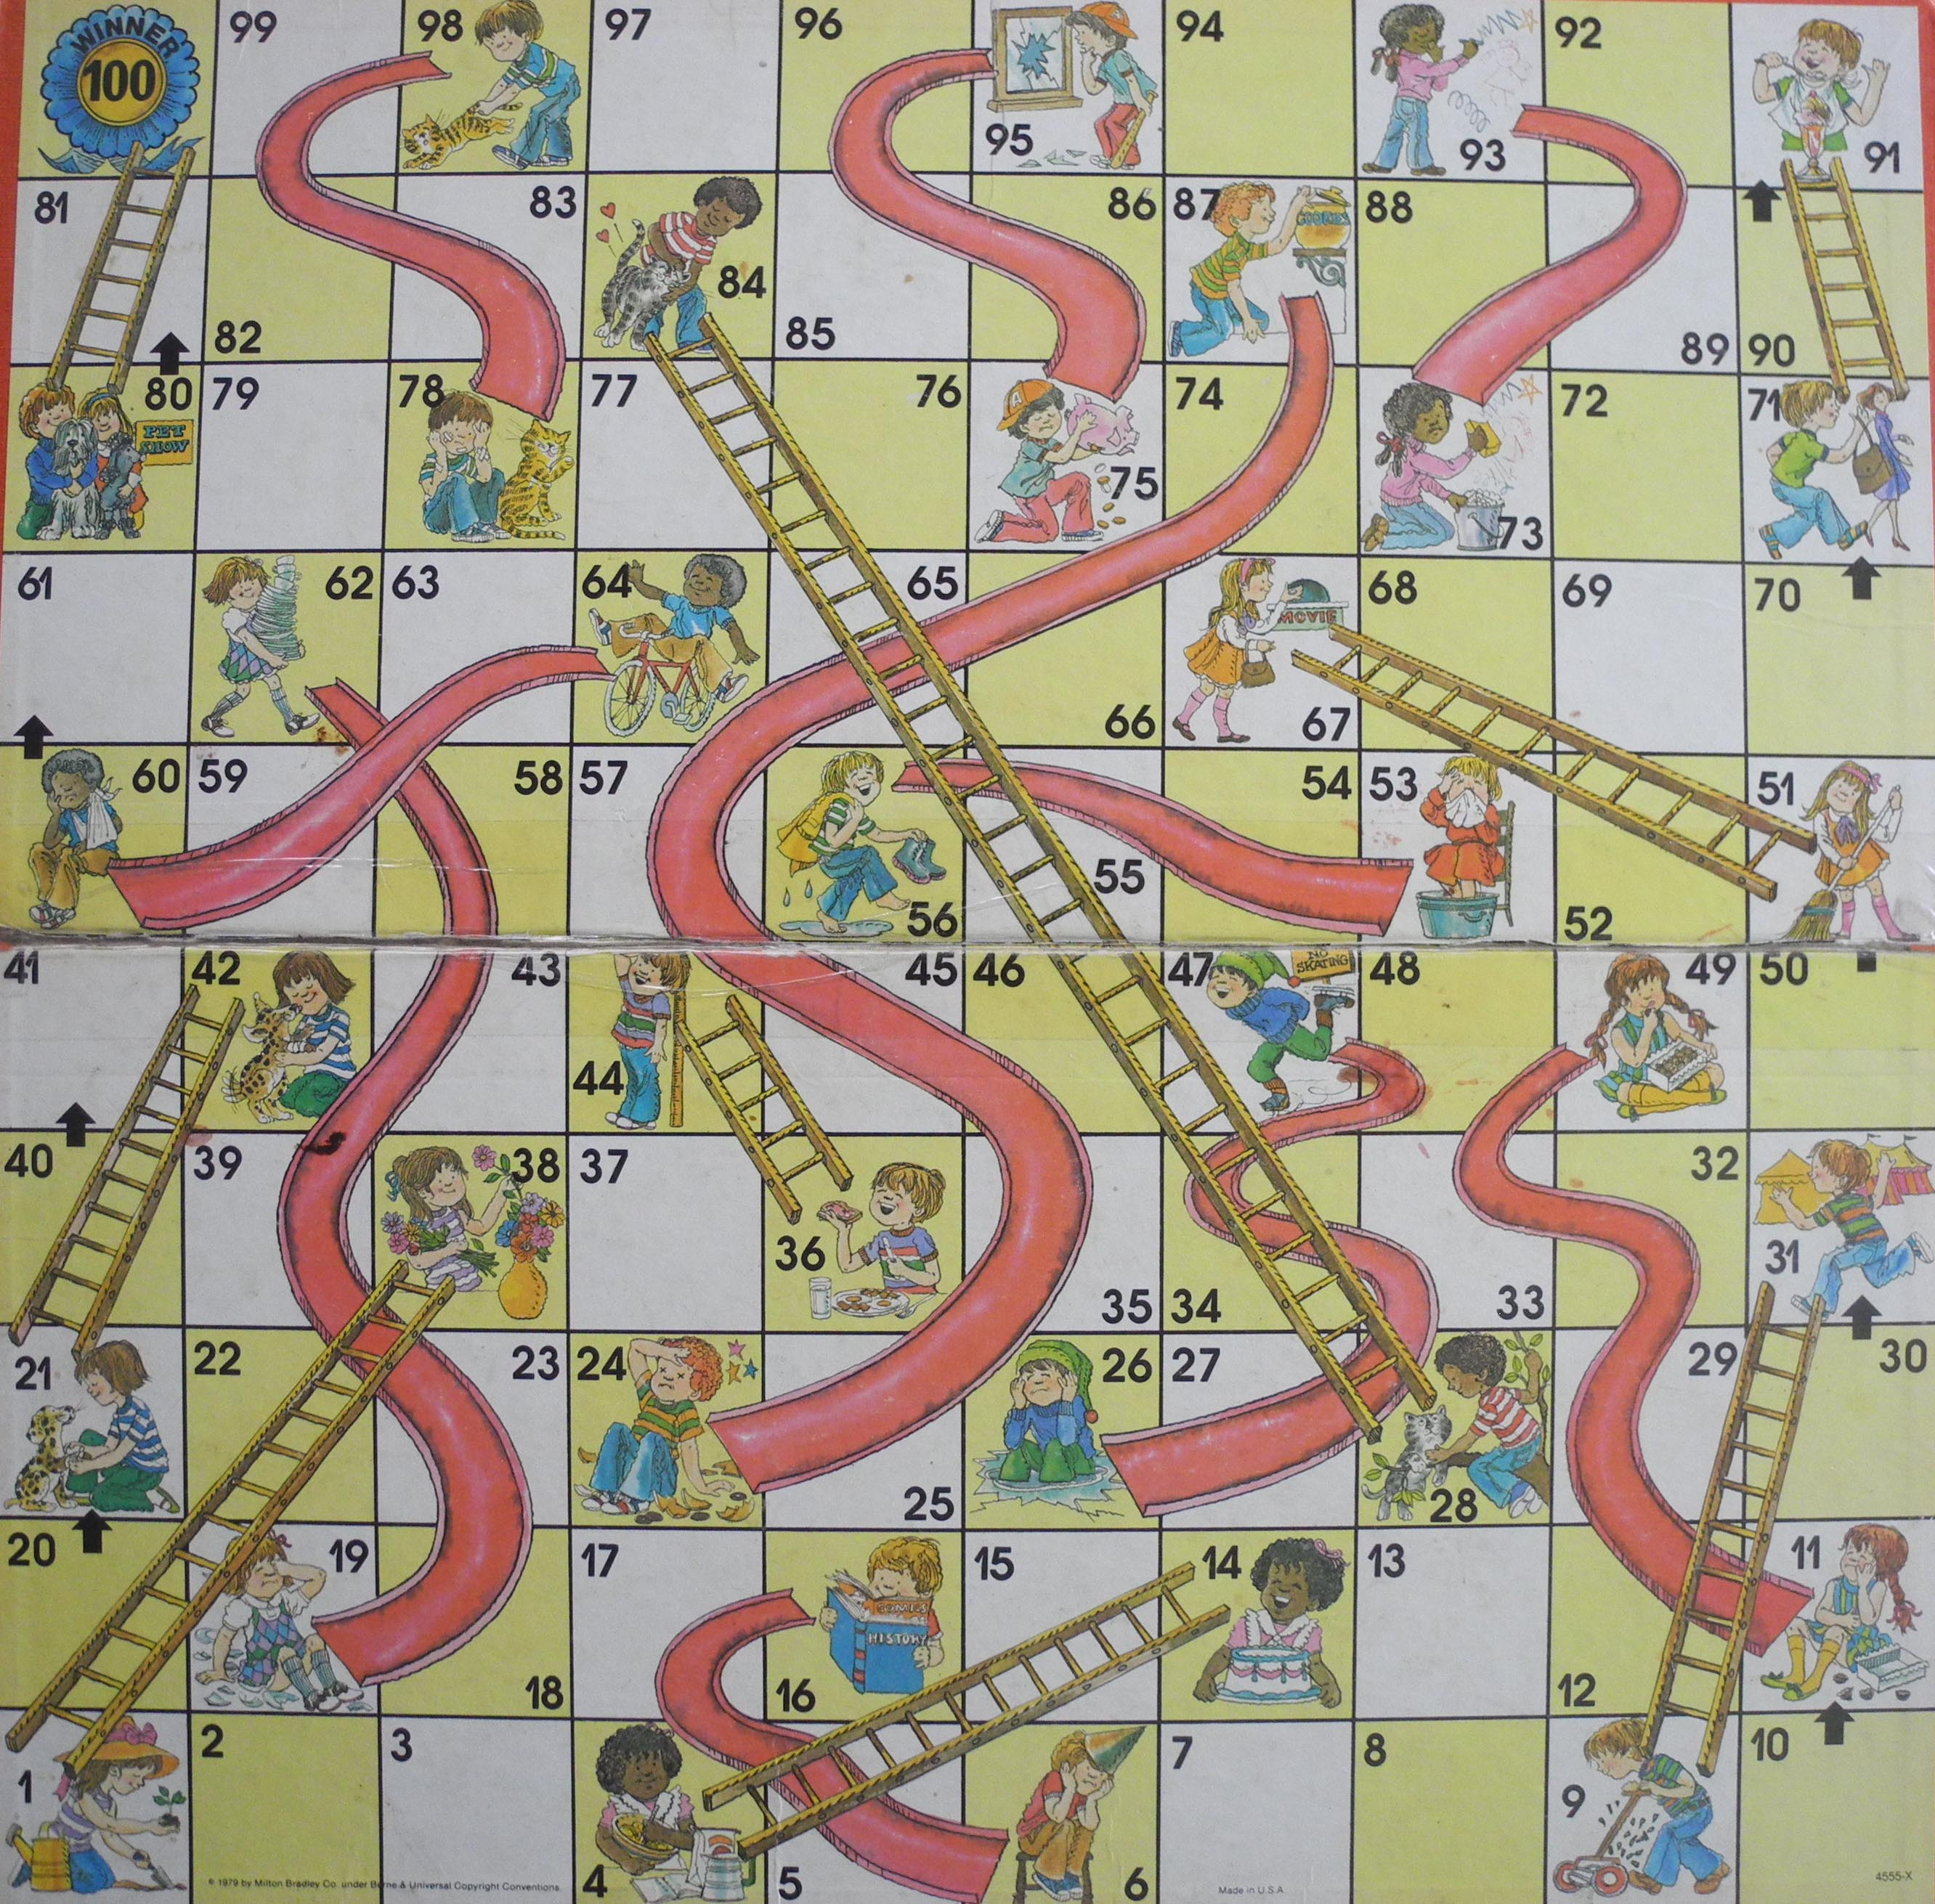 chutes-and-ladders-old-1979-board.jpg